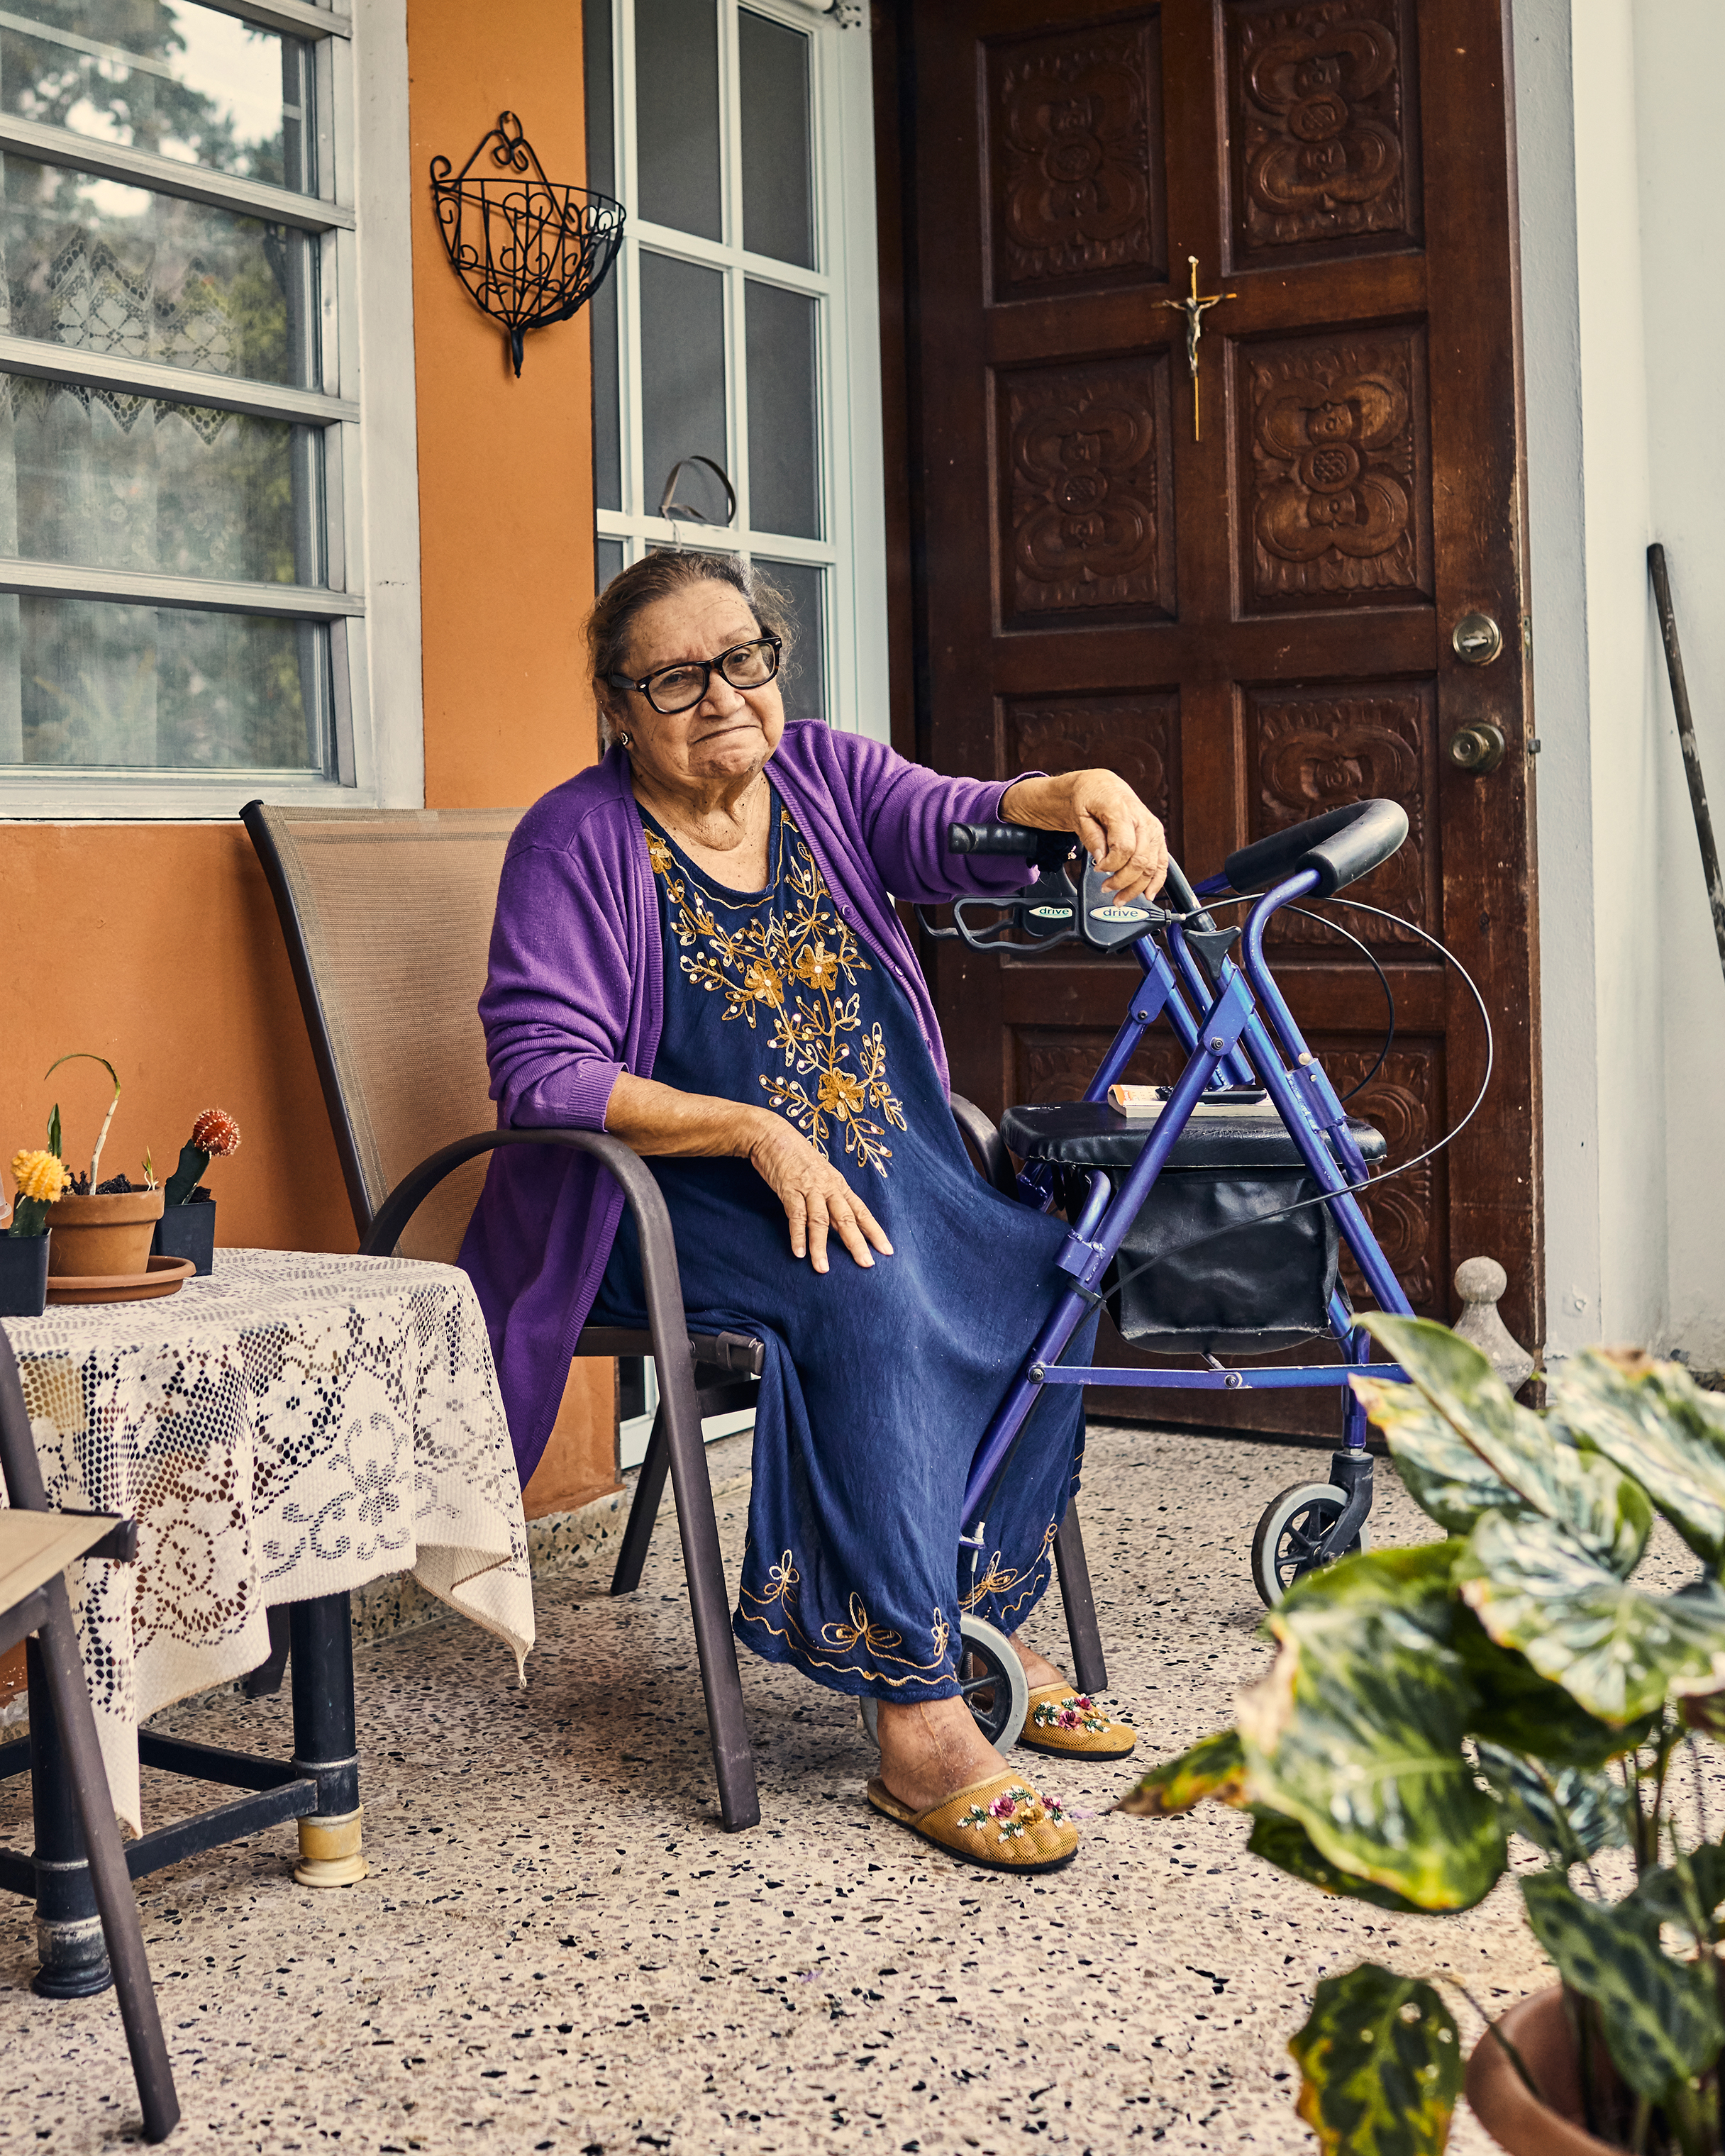 Yolanda Guzmán, who lives in the Caníaco neighborhood of Utuado, almost died from a low blood sugar episode. Crews had cleared the road no farther than her house, allowing an ambulance to pick her up as she lost consciousness.